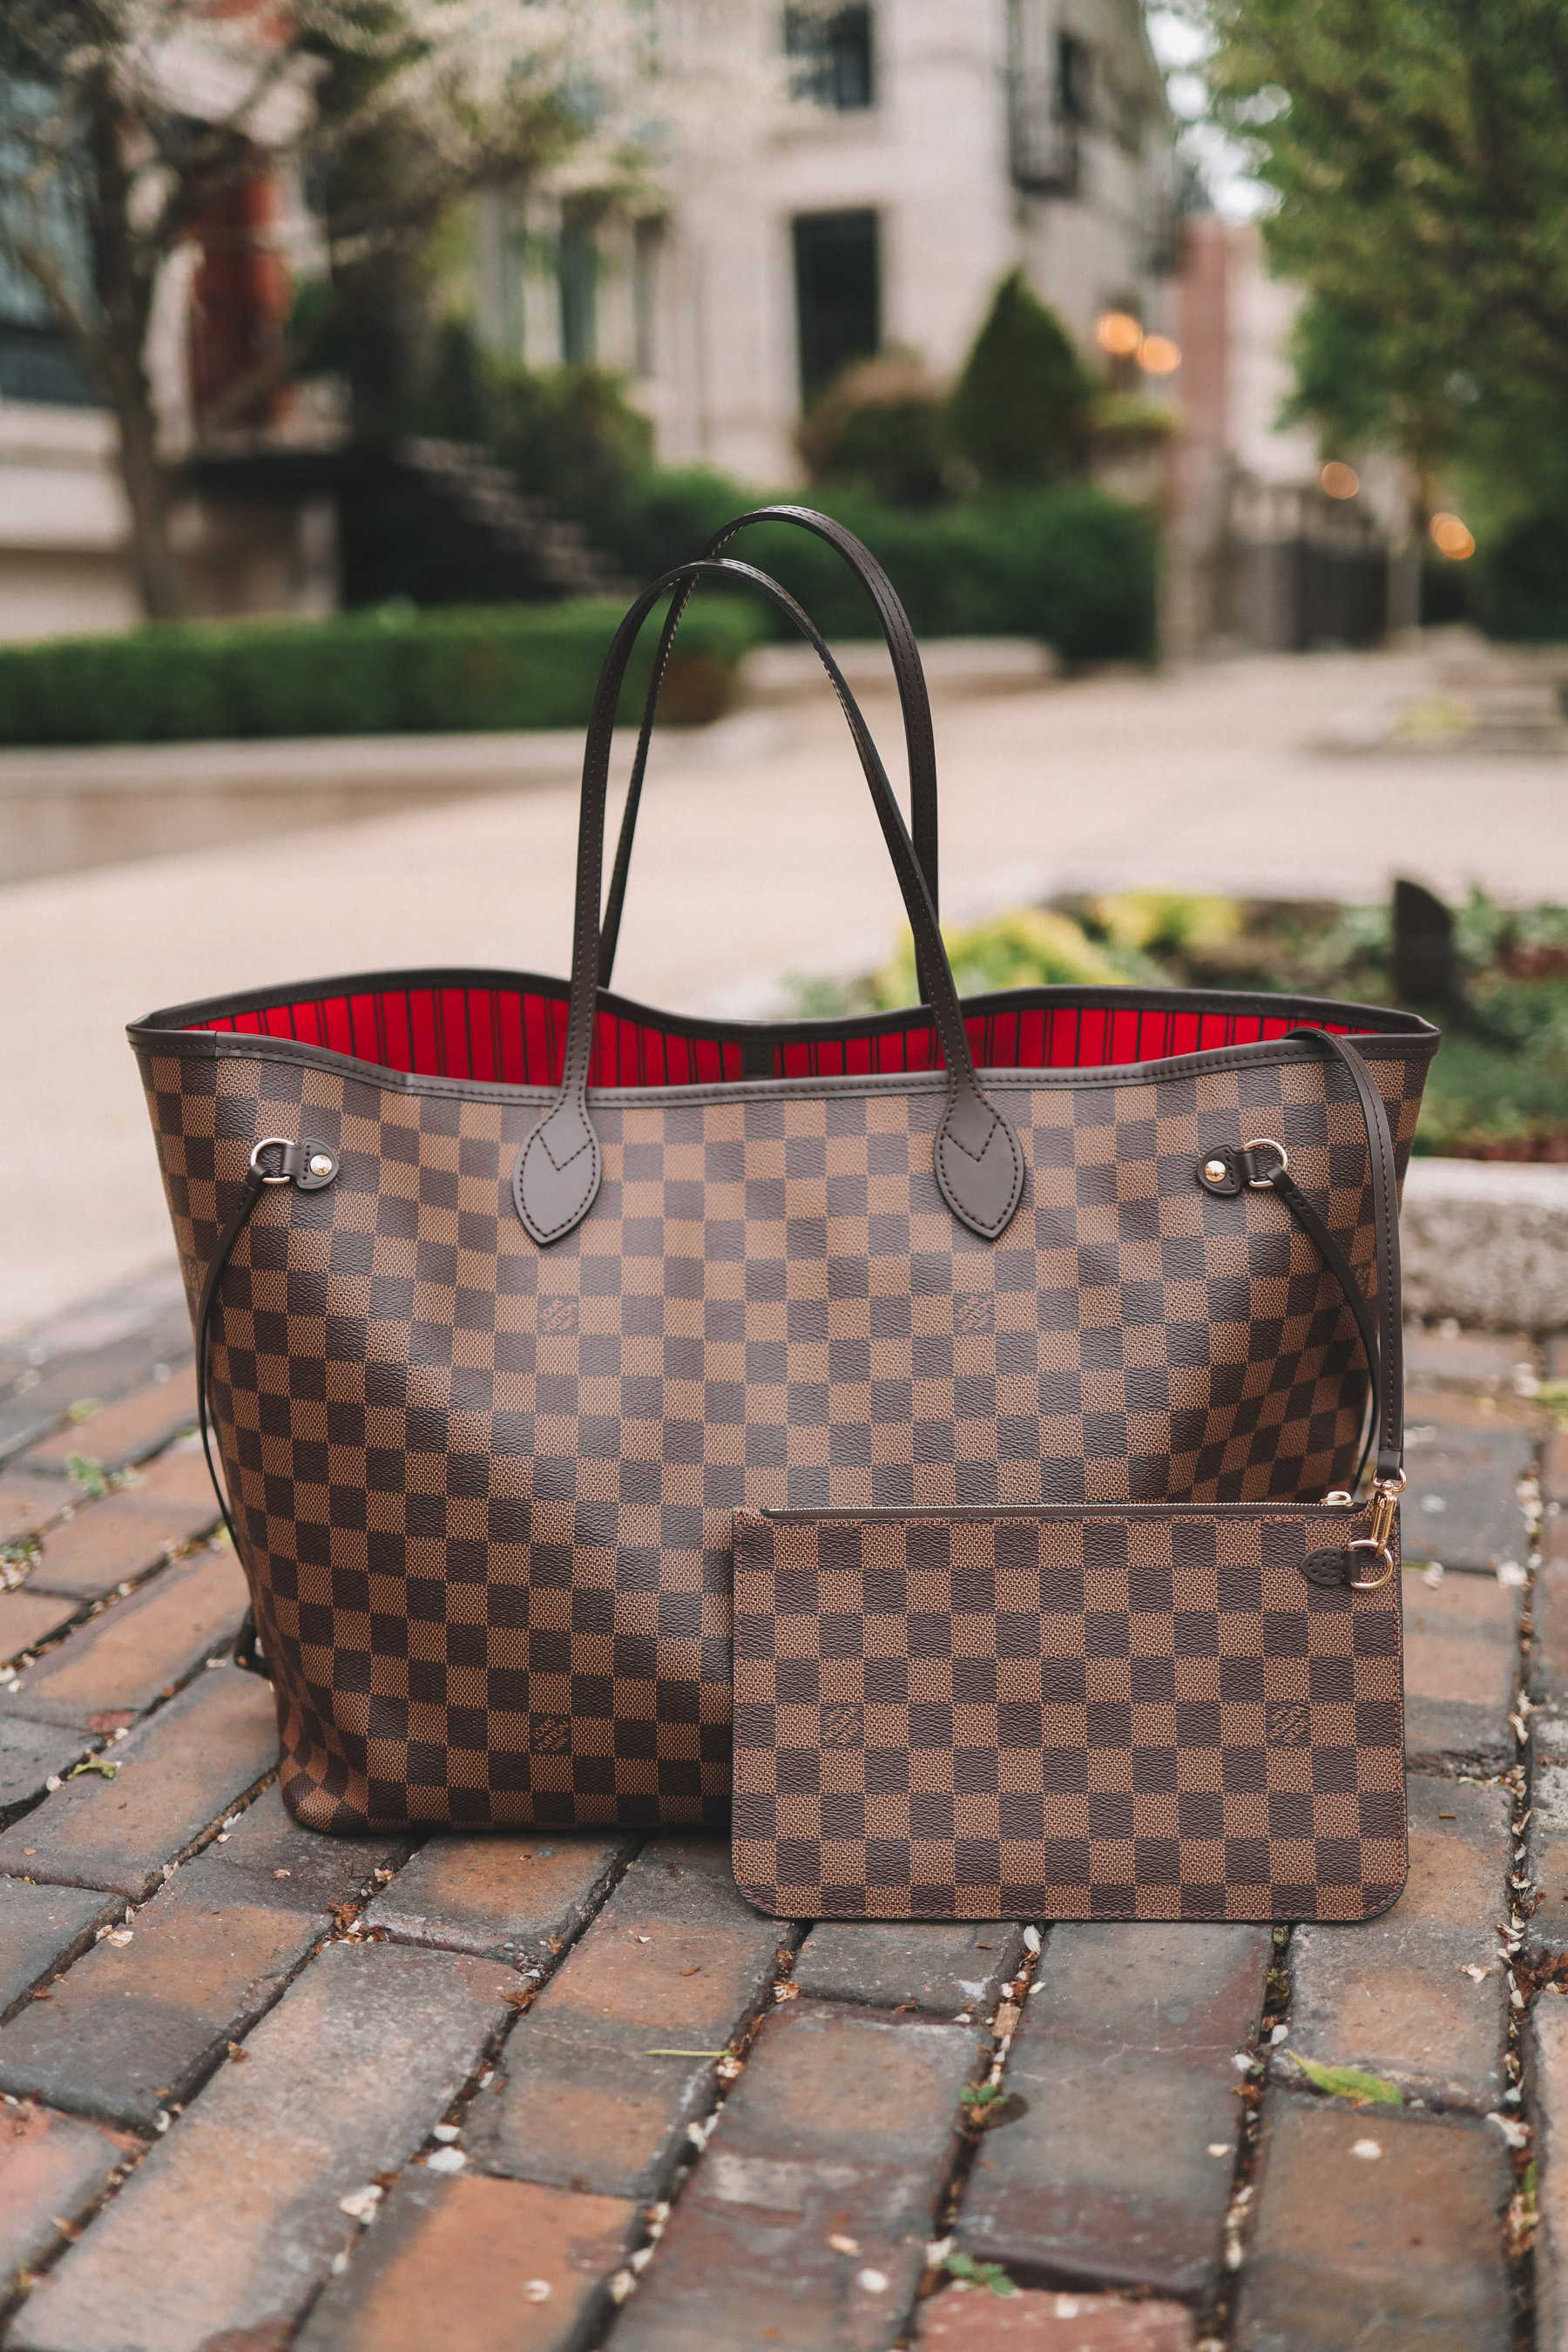 Louis Vuitton Neverfull Tote review